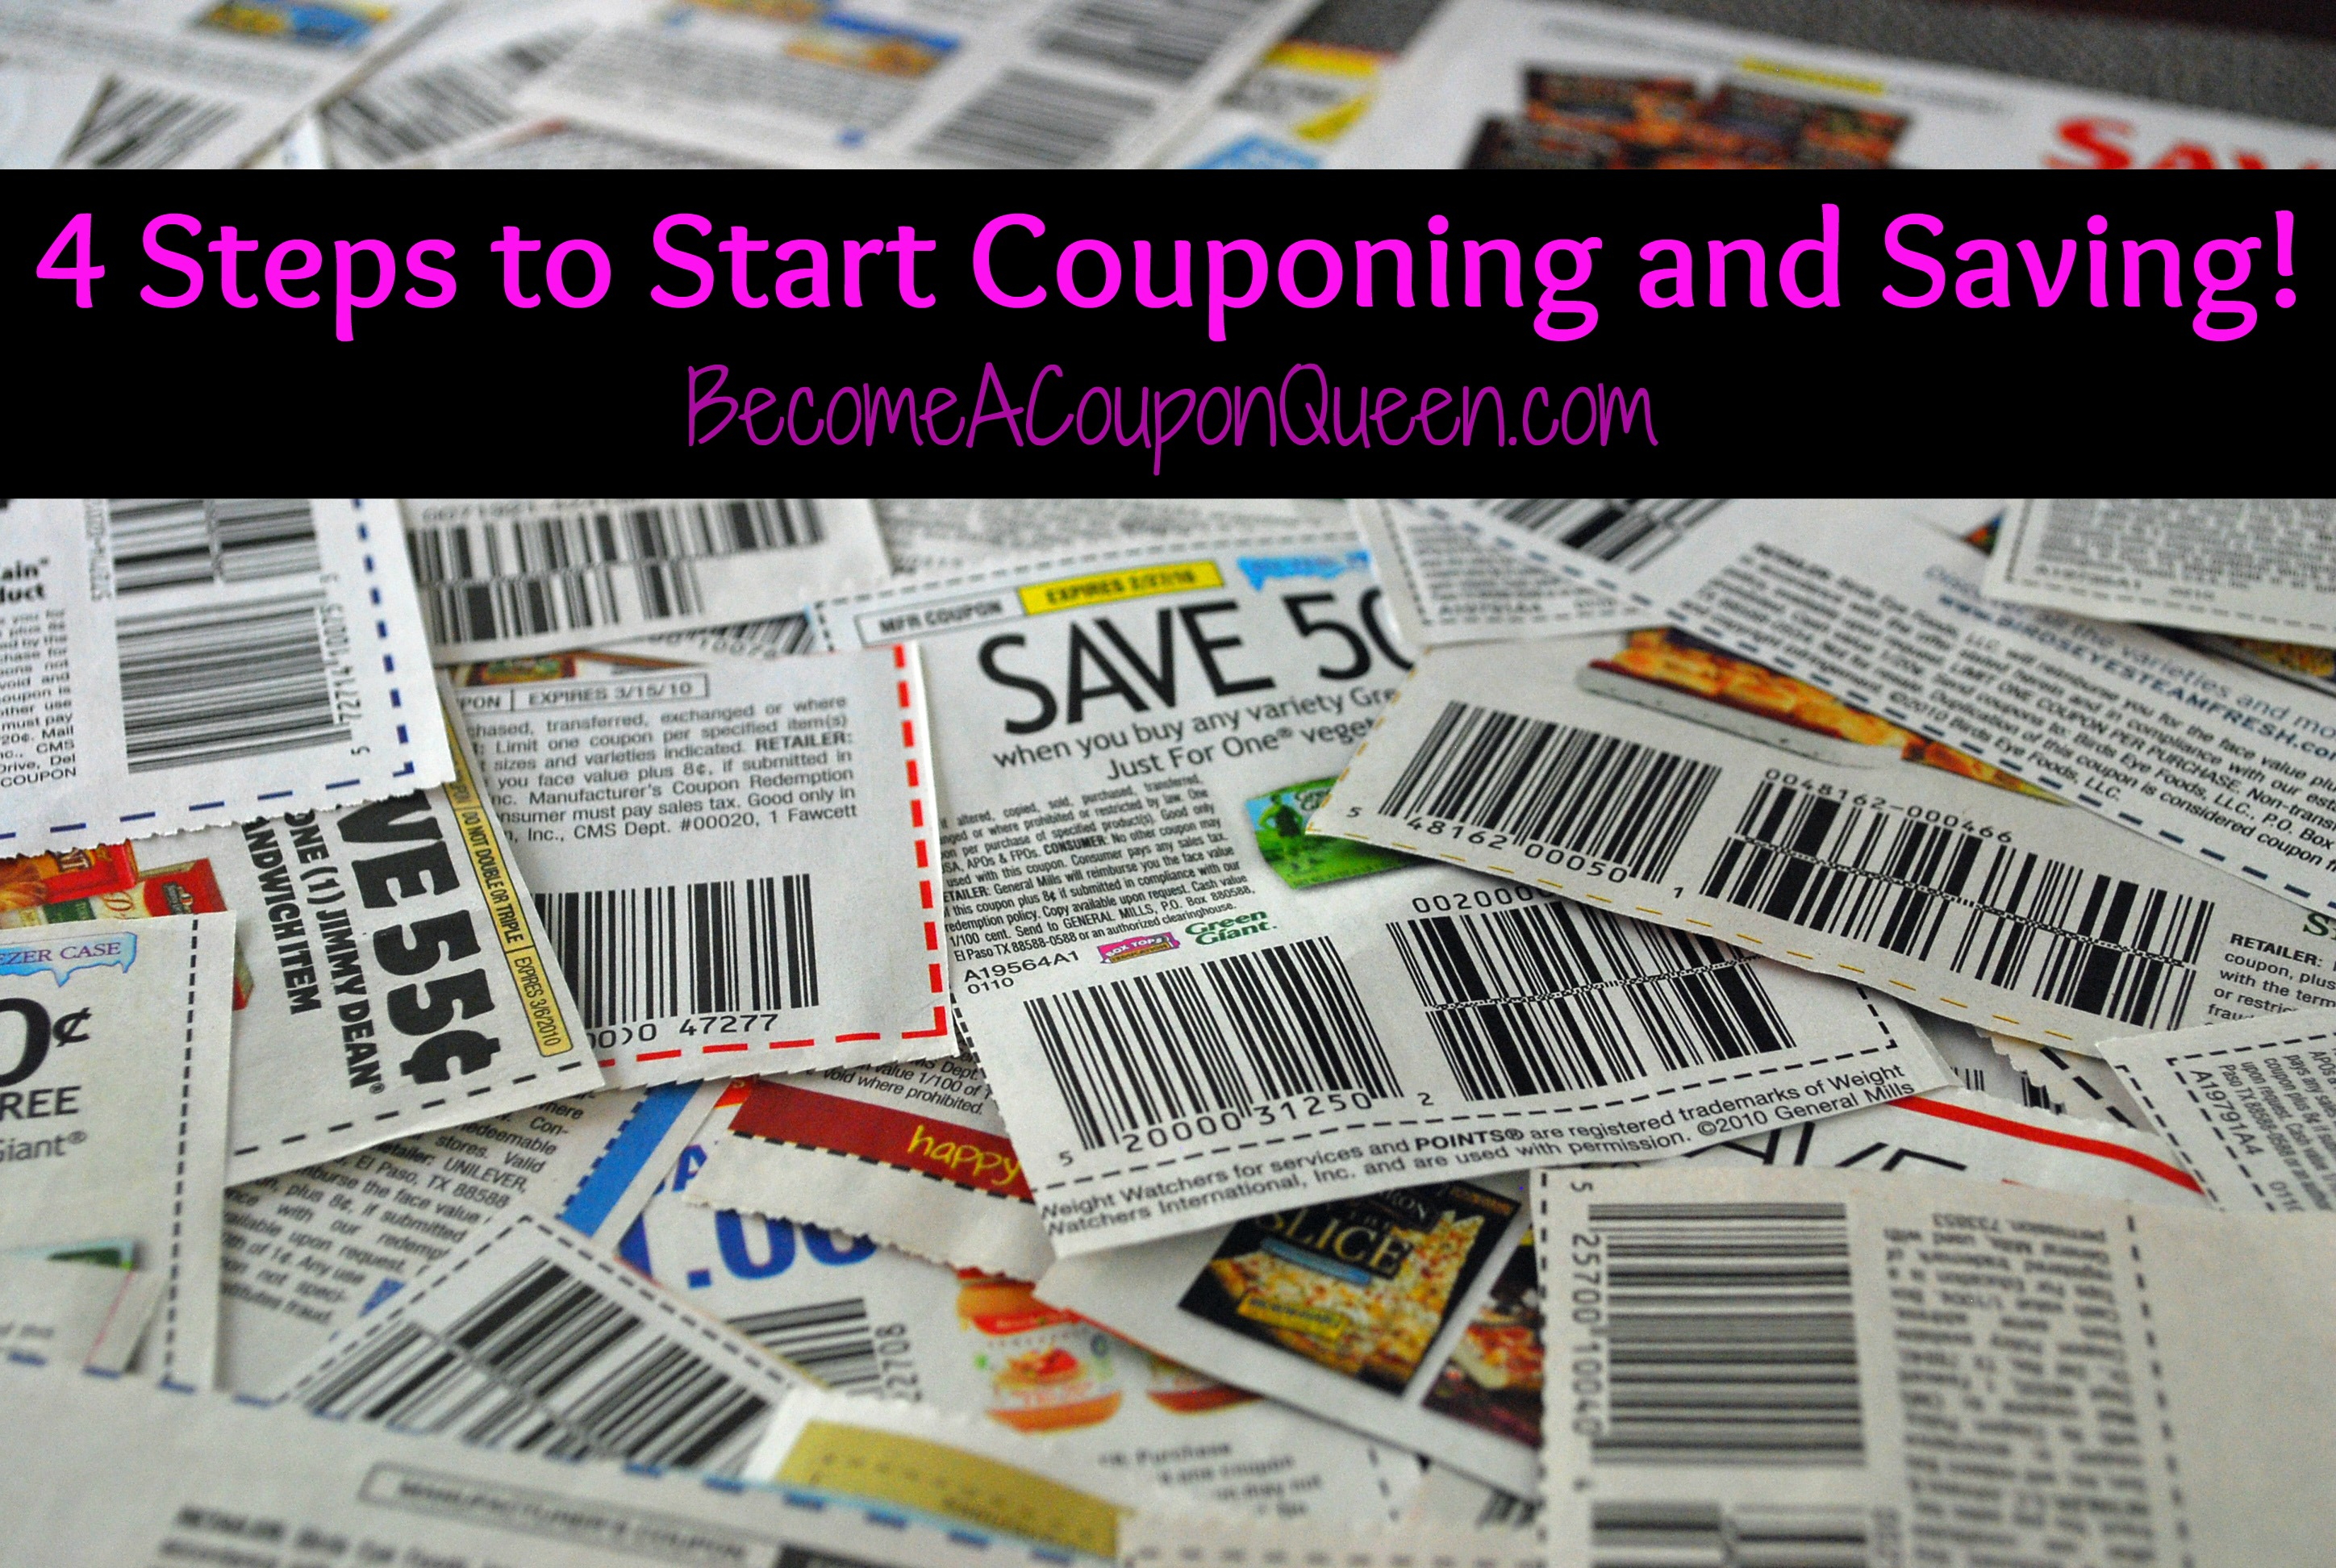 Coupon master clipping service - Coupon Master Clipping Service 34